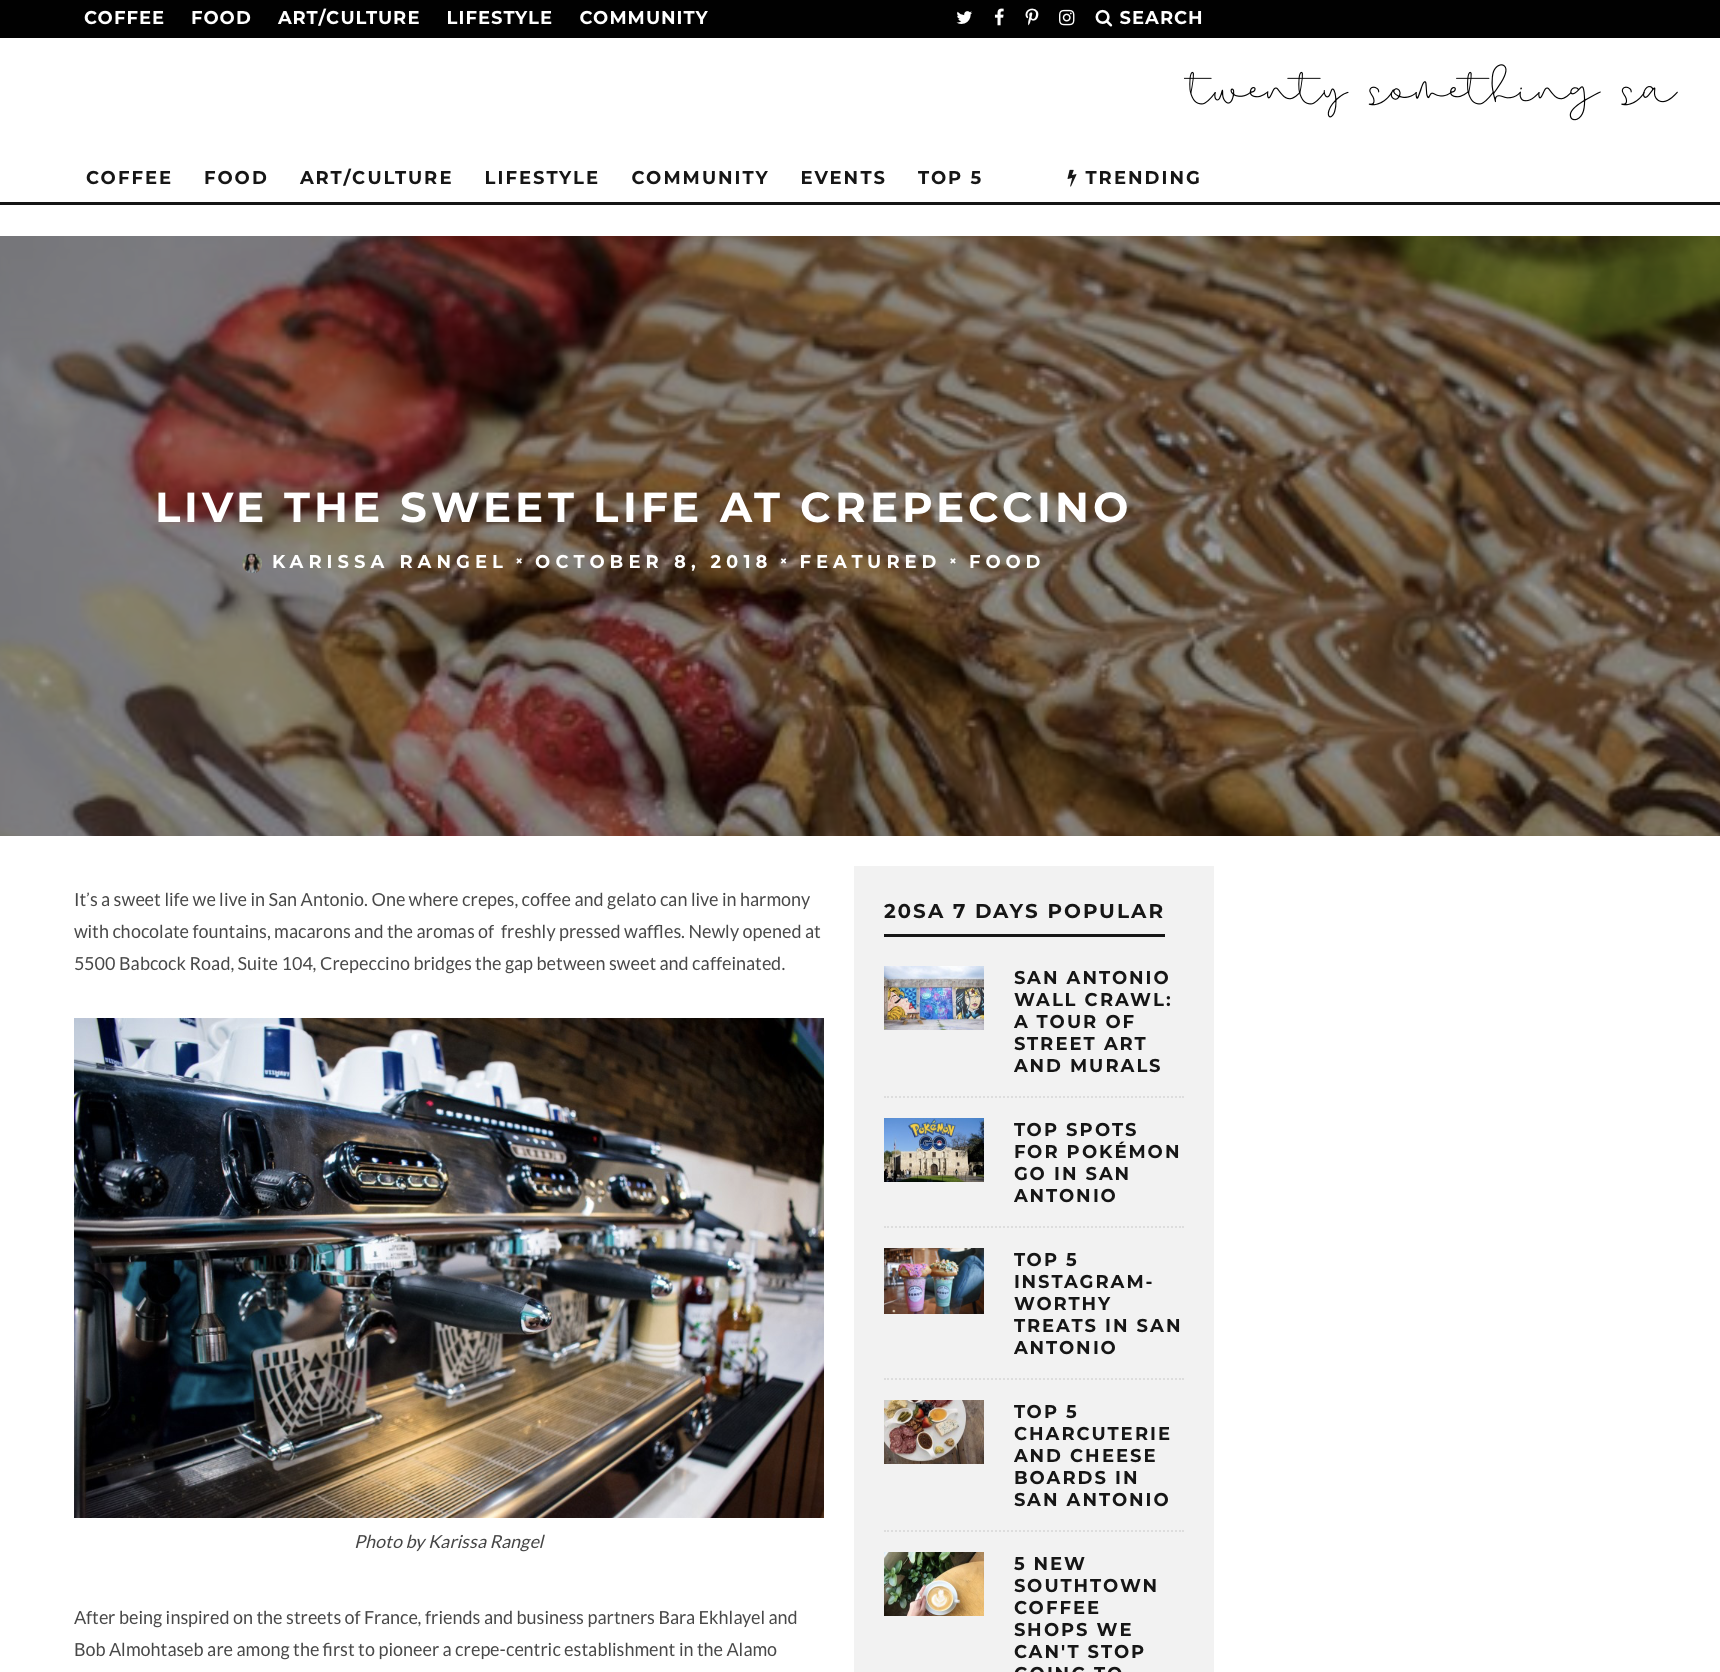 LIVE THE SWEET LIFE AT CREPECCINO